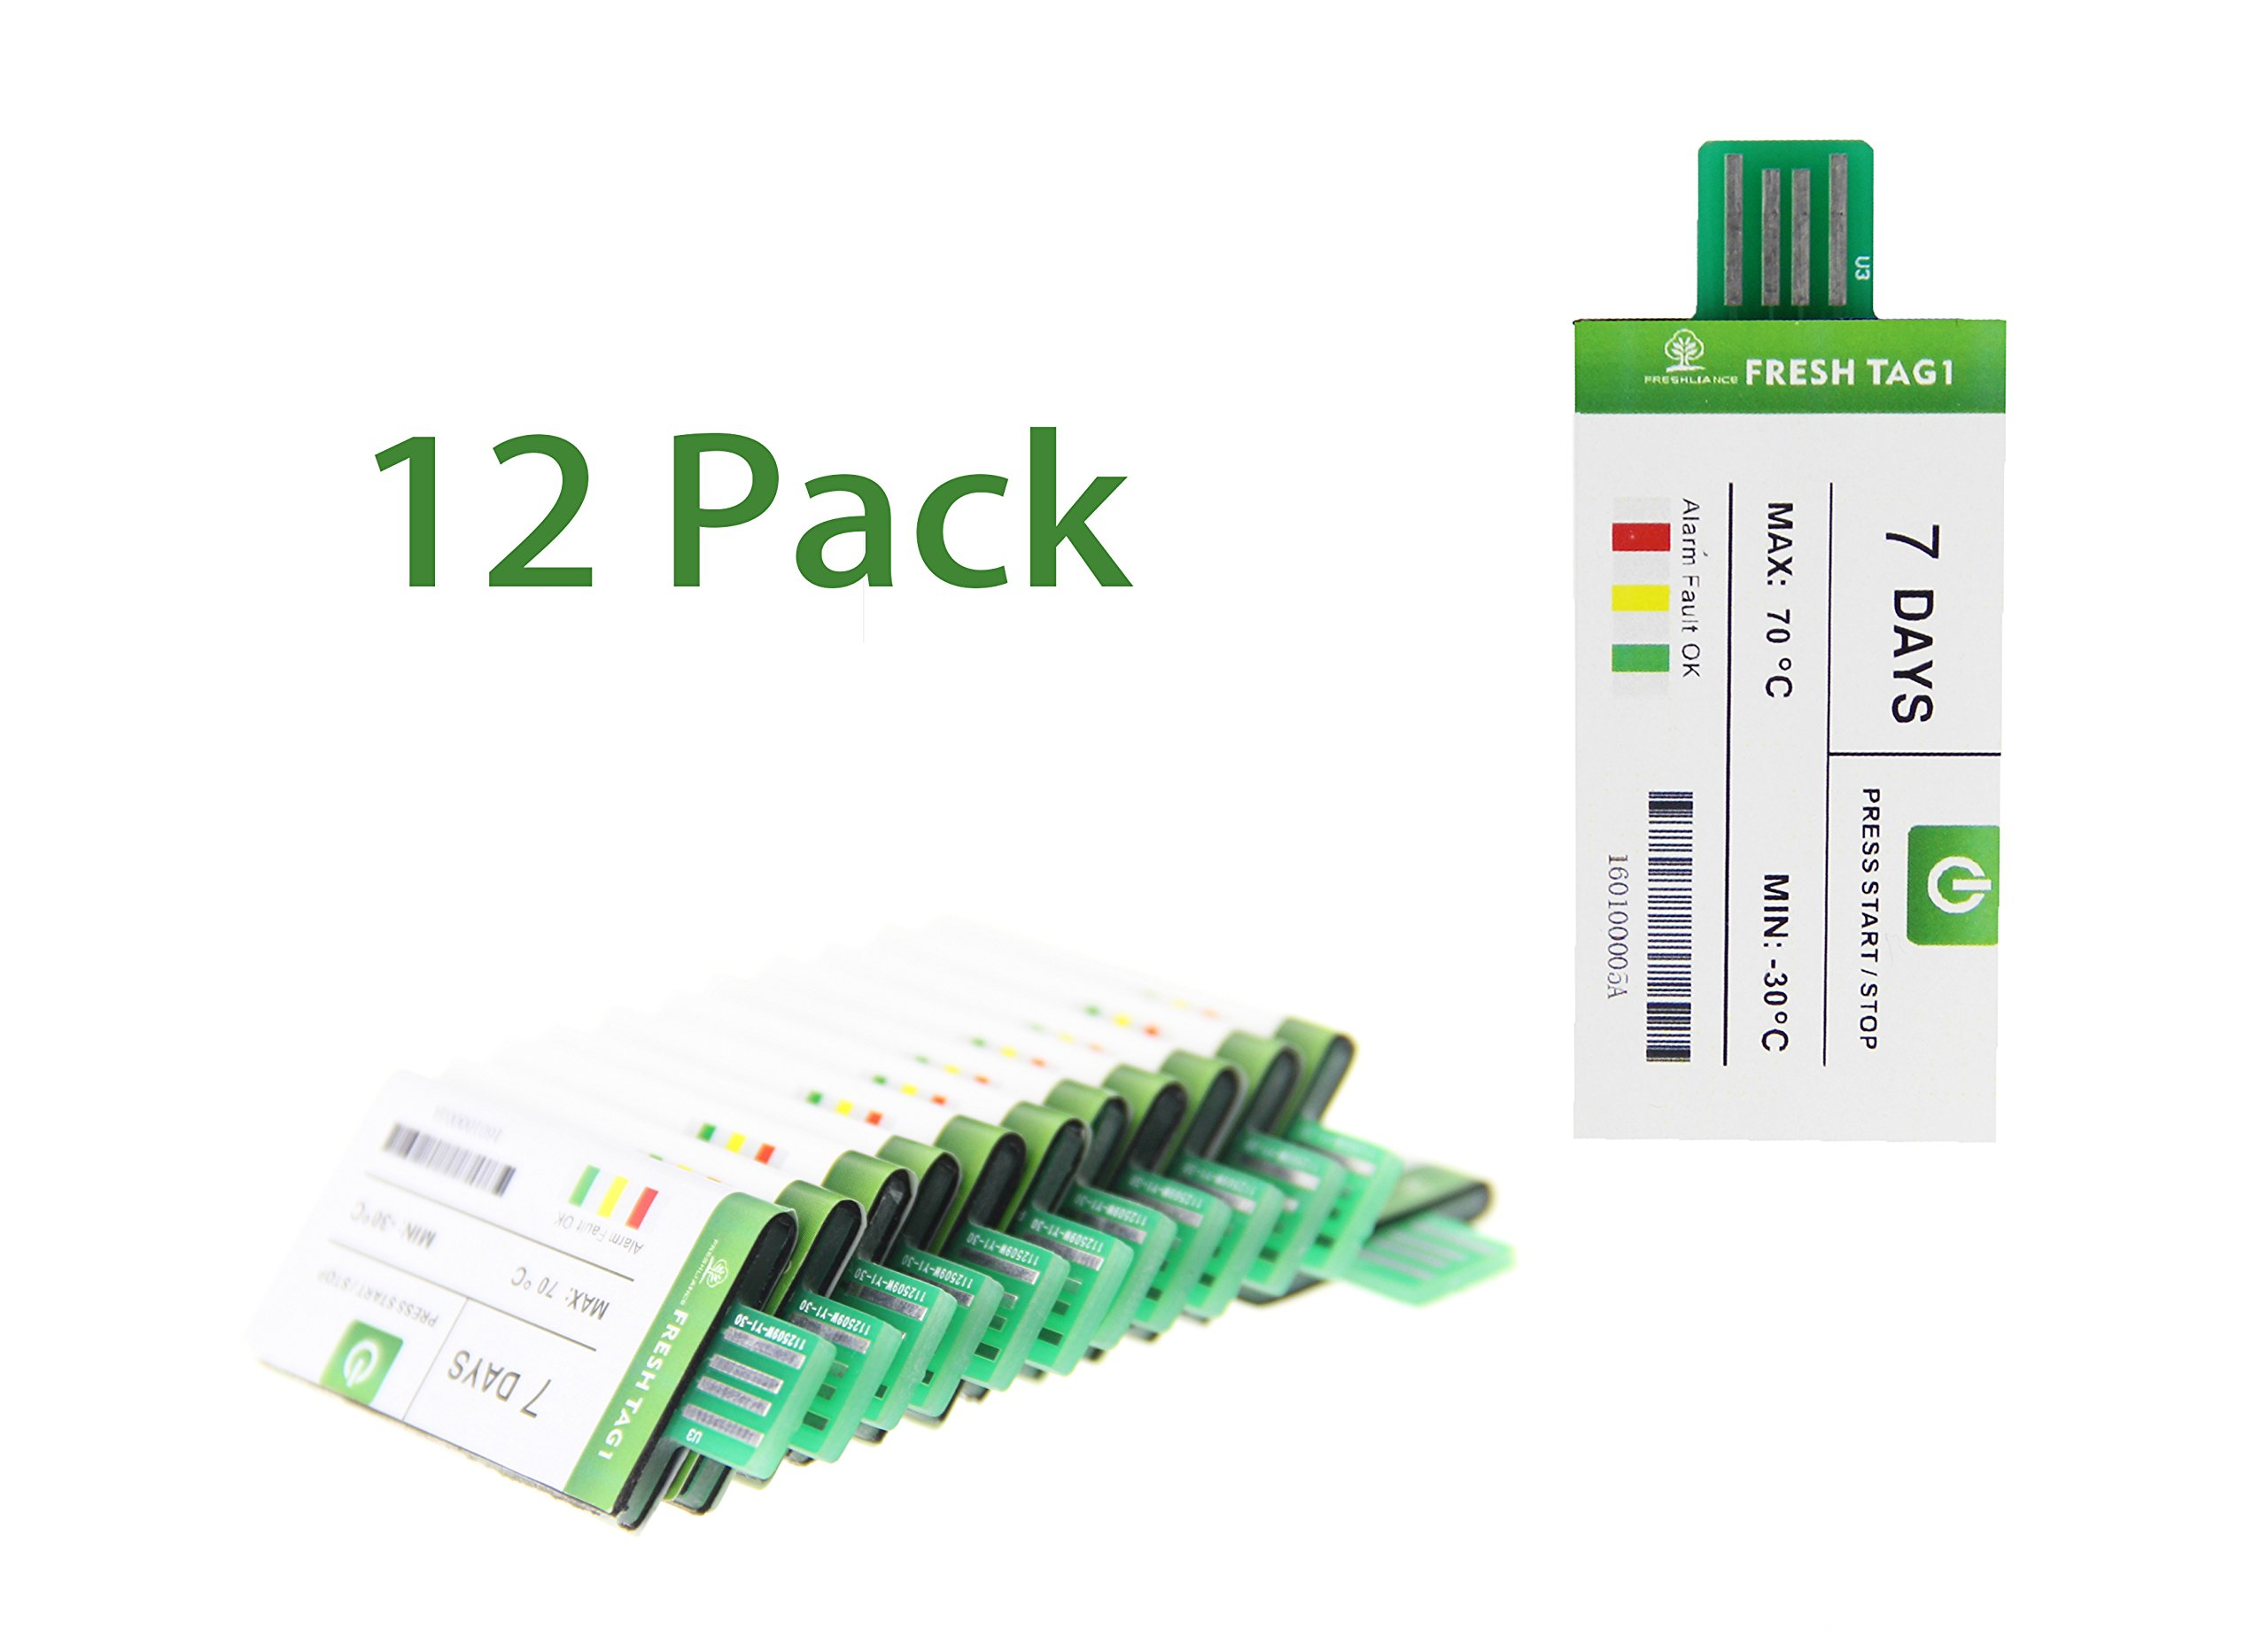 FRESHLIANCE -[12 Pack] Disposable Waterproof USB Temperature Data Logger Single-Use PDF Recorder for The Cold Chain- 7 Days Record Duration